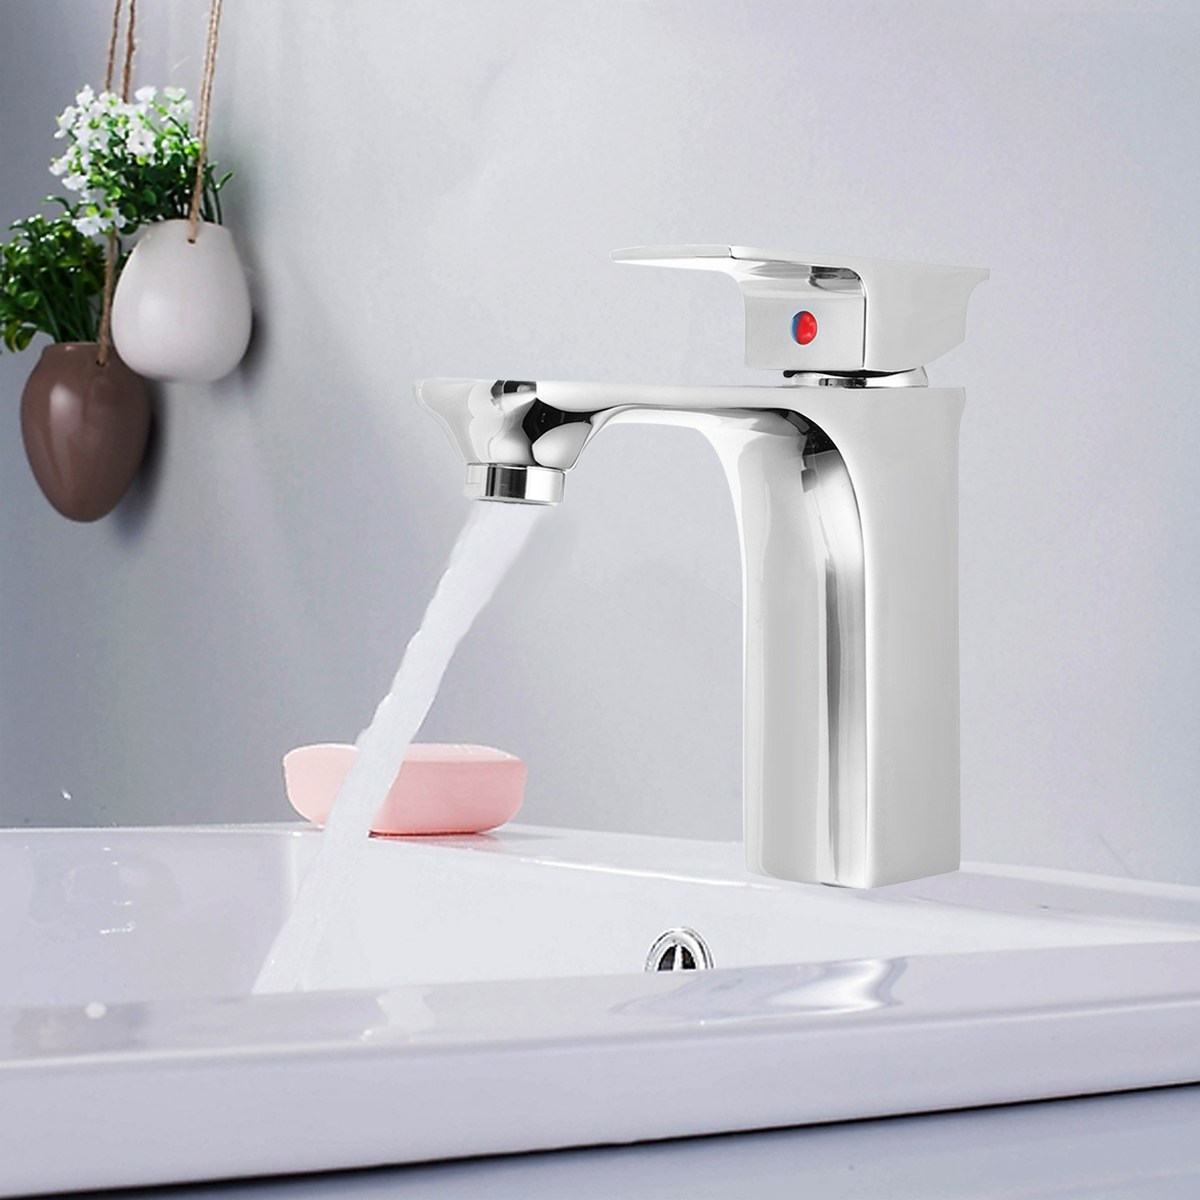 Chrome/Black Brass Bathroom Basin Low Faucet Single Hole/Handle Waterfall Bath Sink Faucet Hot and Cold Water Mixer Tap newest washbasin design single hole one handle bathroom basin faucet mixer tap hot and cold water orb chrome brusehd